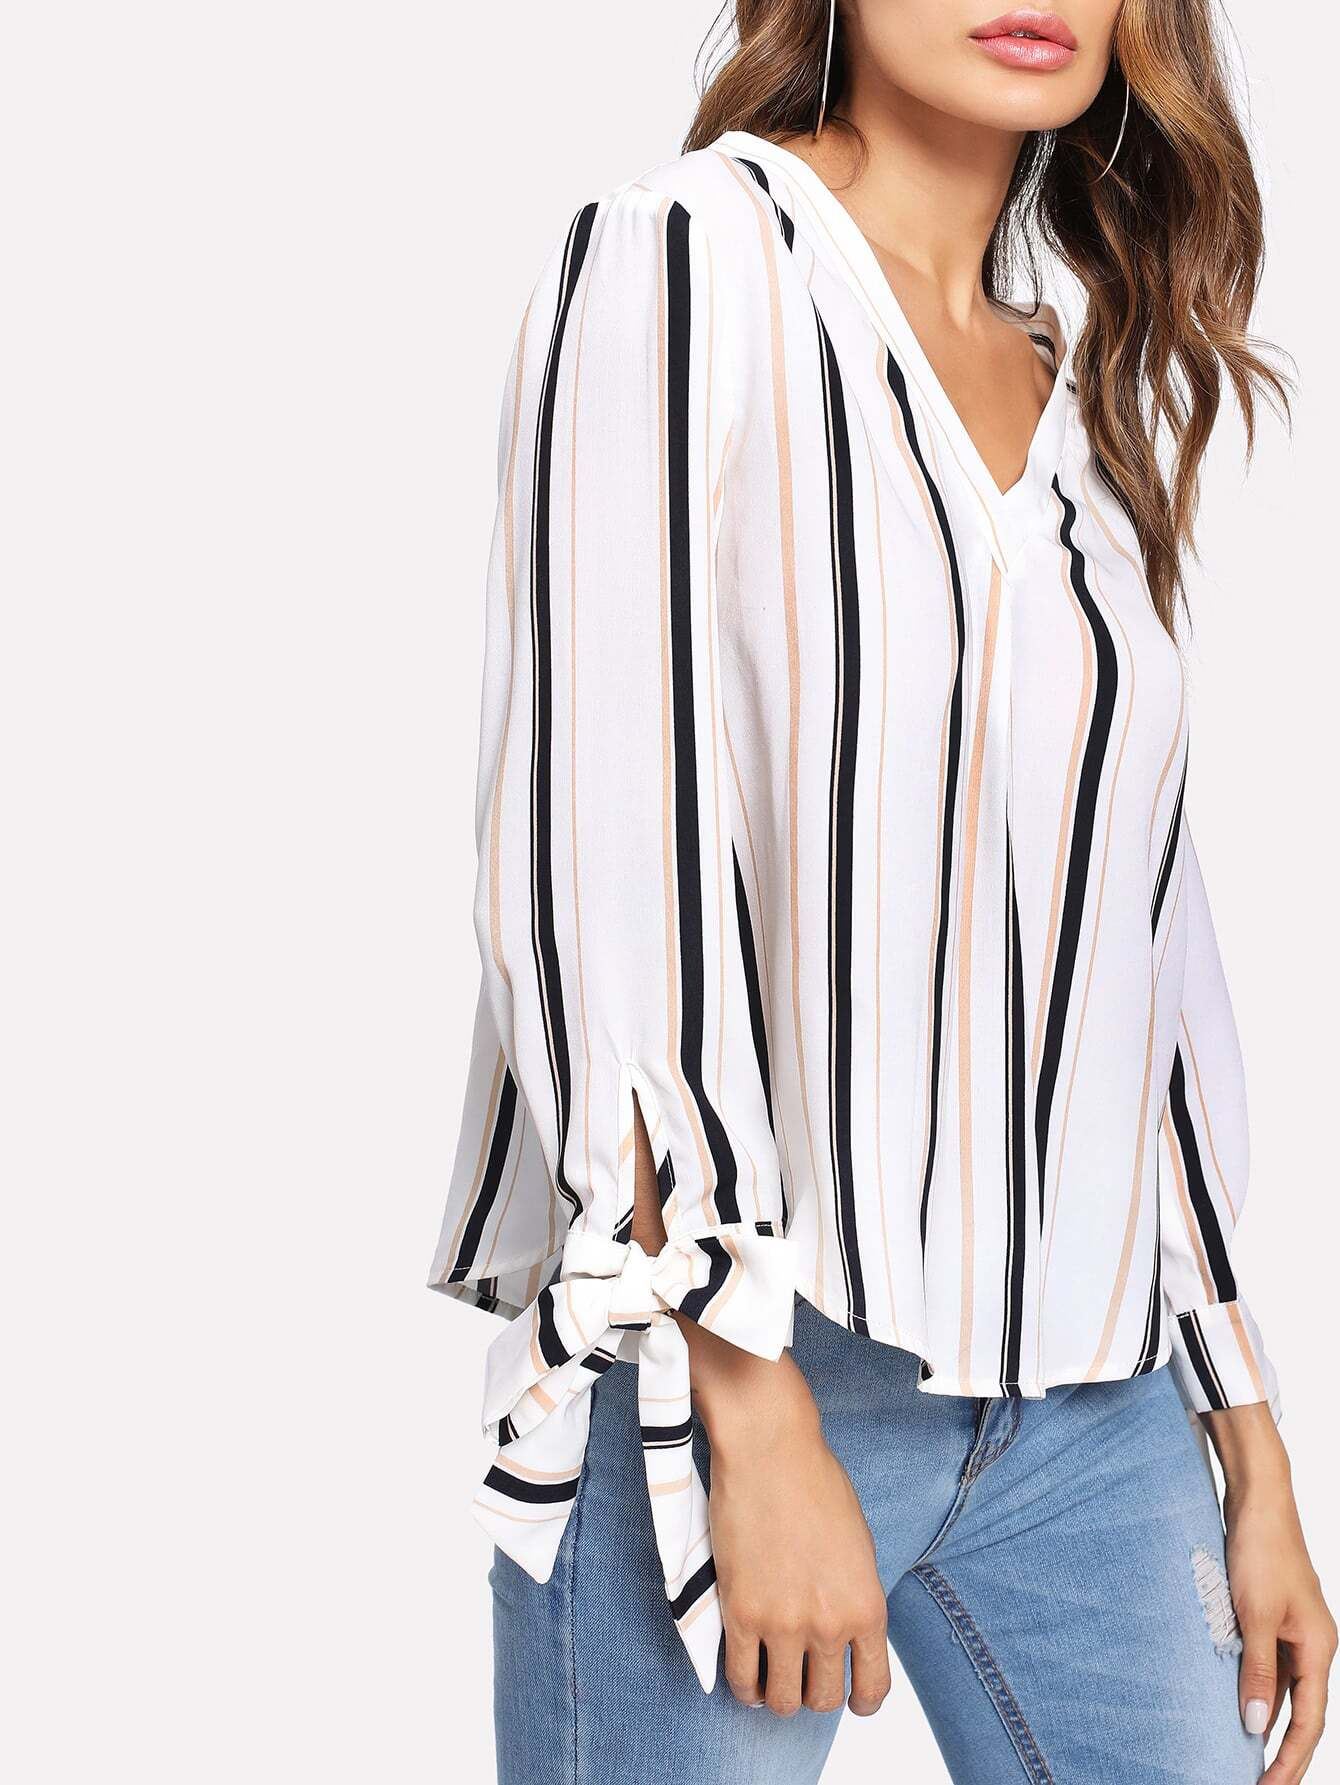 Bow Tied Cuff Vertical Striped Blouse vertical striped embroidered half placket tie cuff blouse